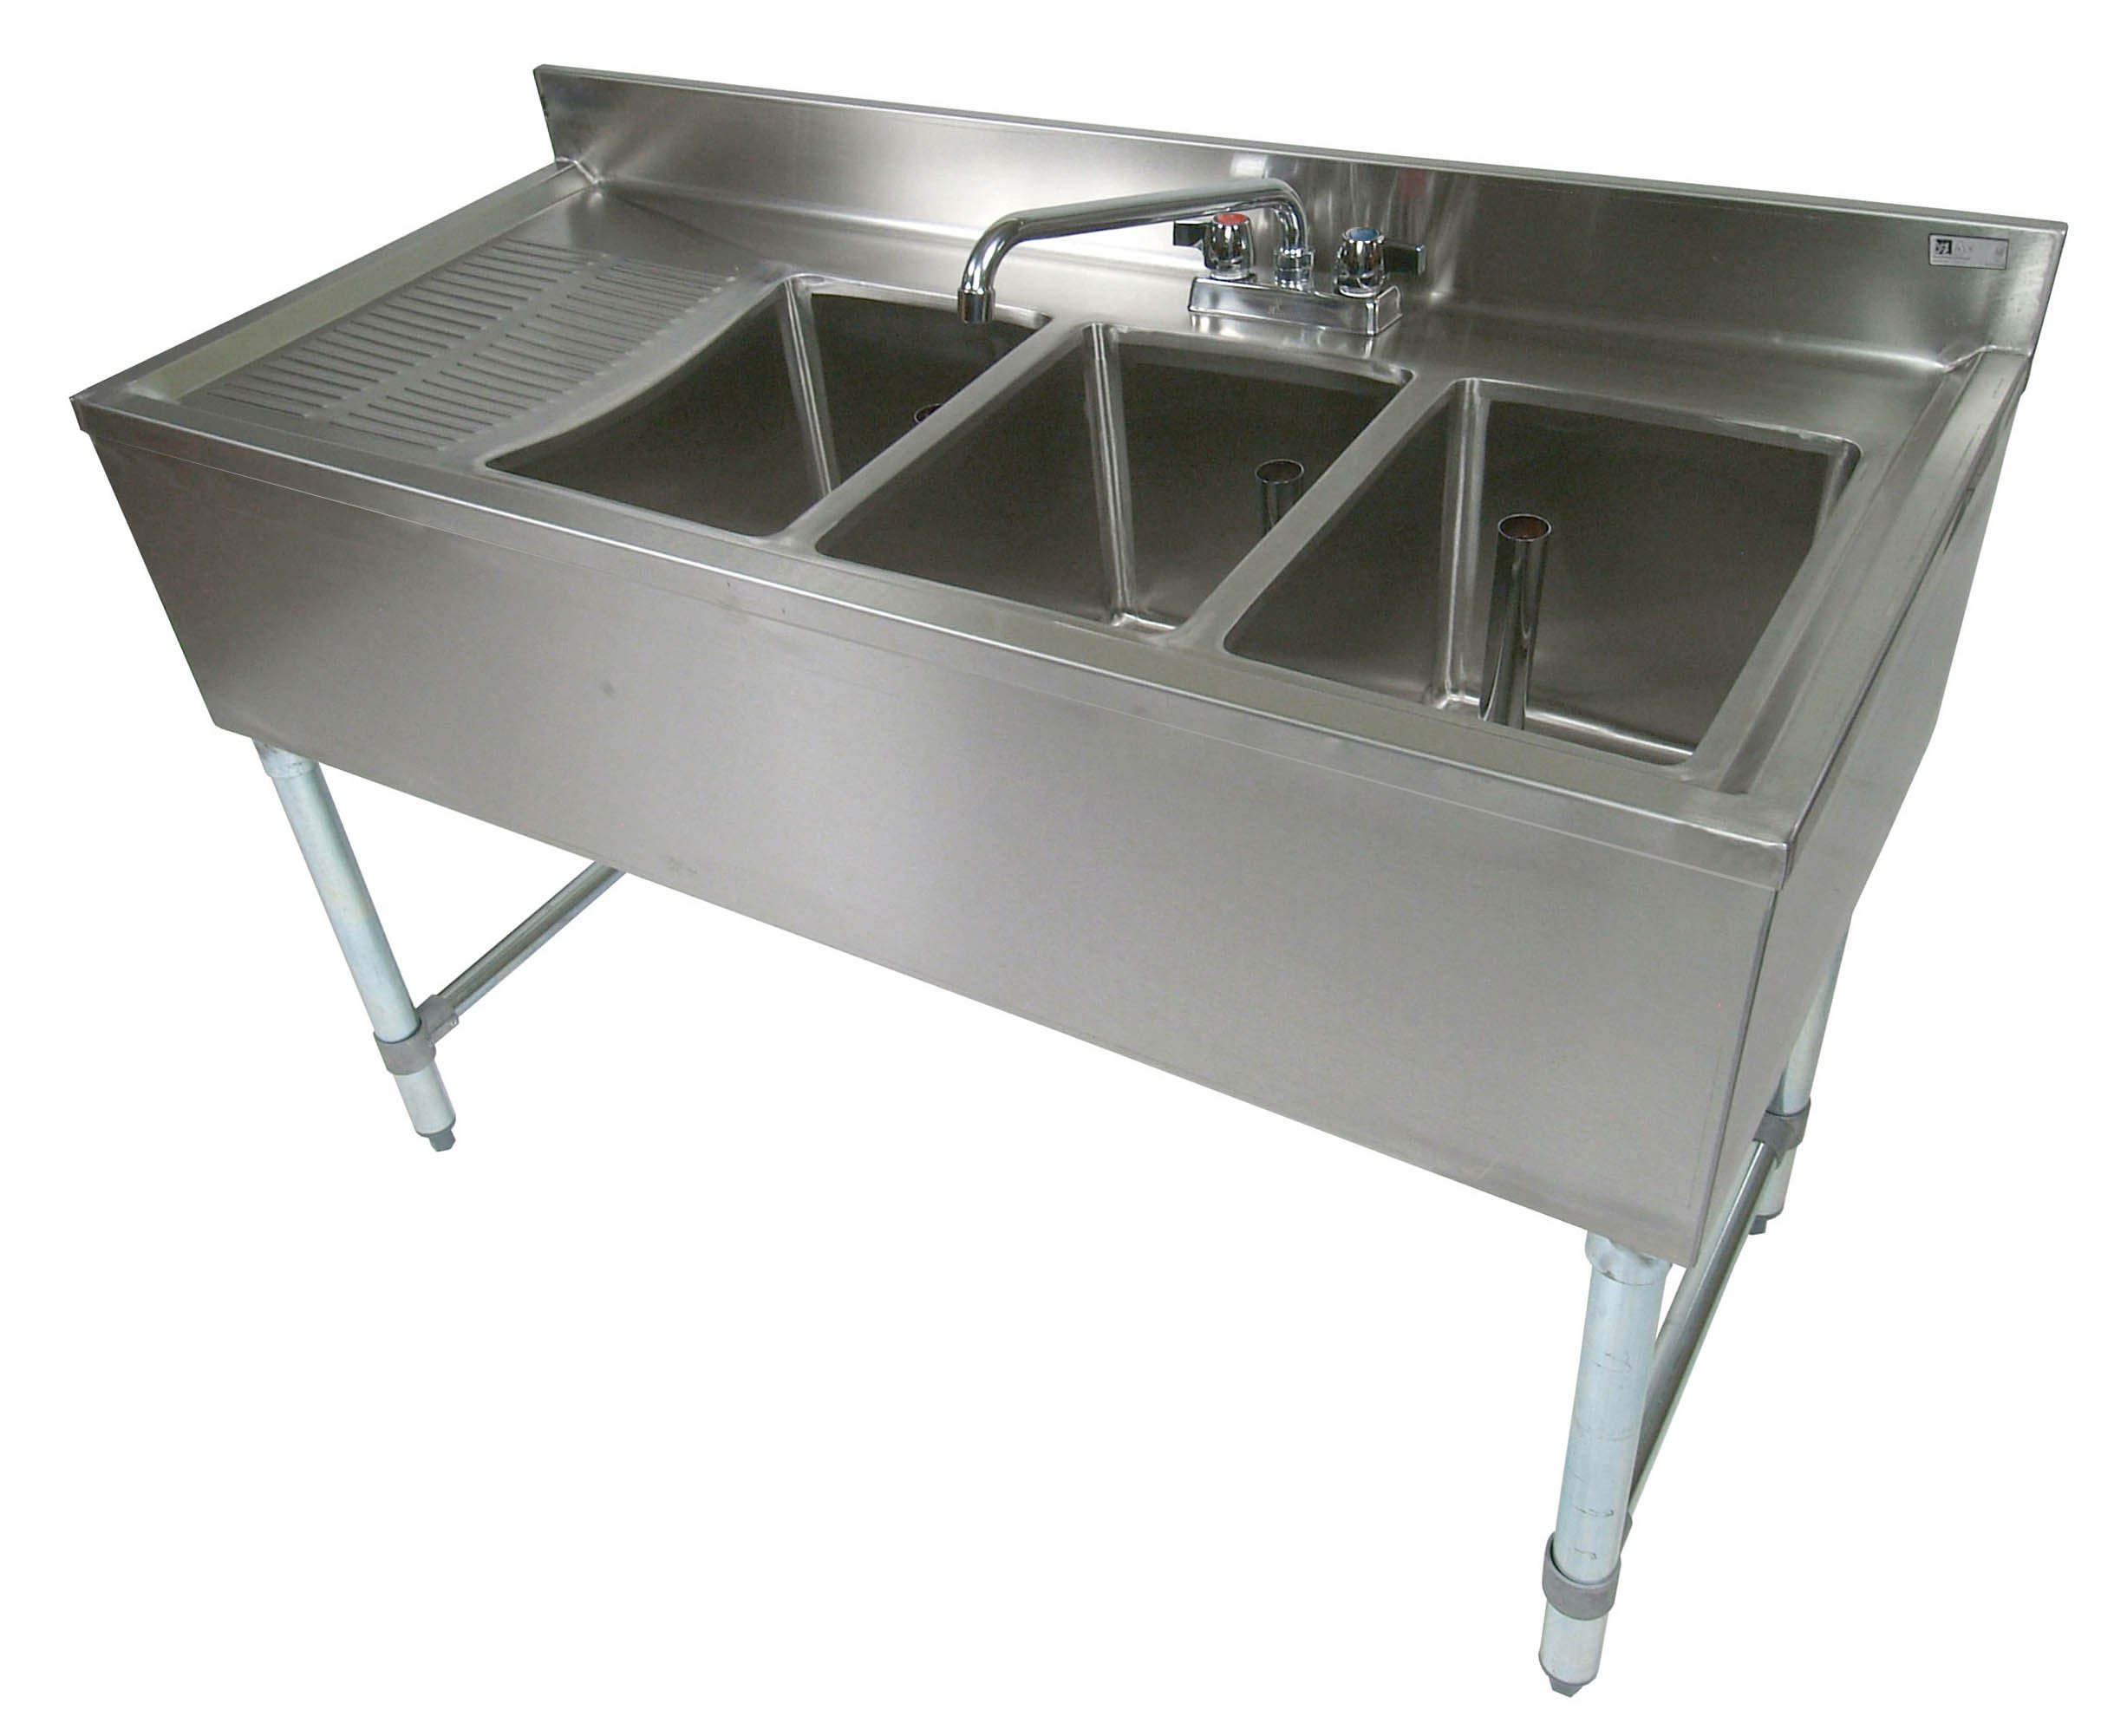 John Boos EUB3S48-1LD Stainless Steel Bar Sink, 3 Compartments, 48'' Length x 21'' Width, Left Hand Side Drain Board